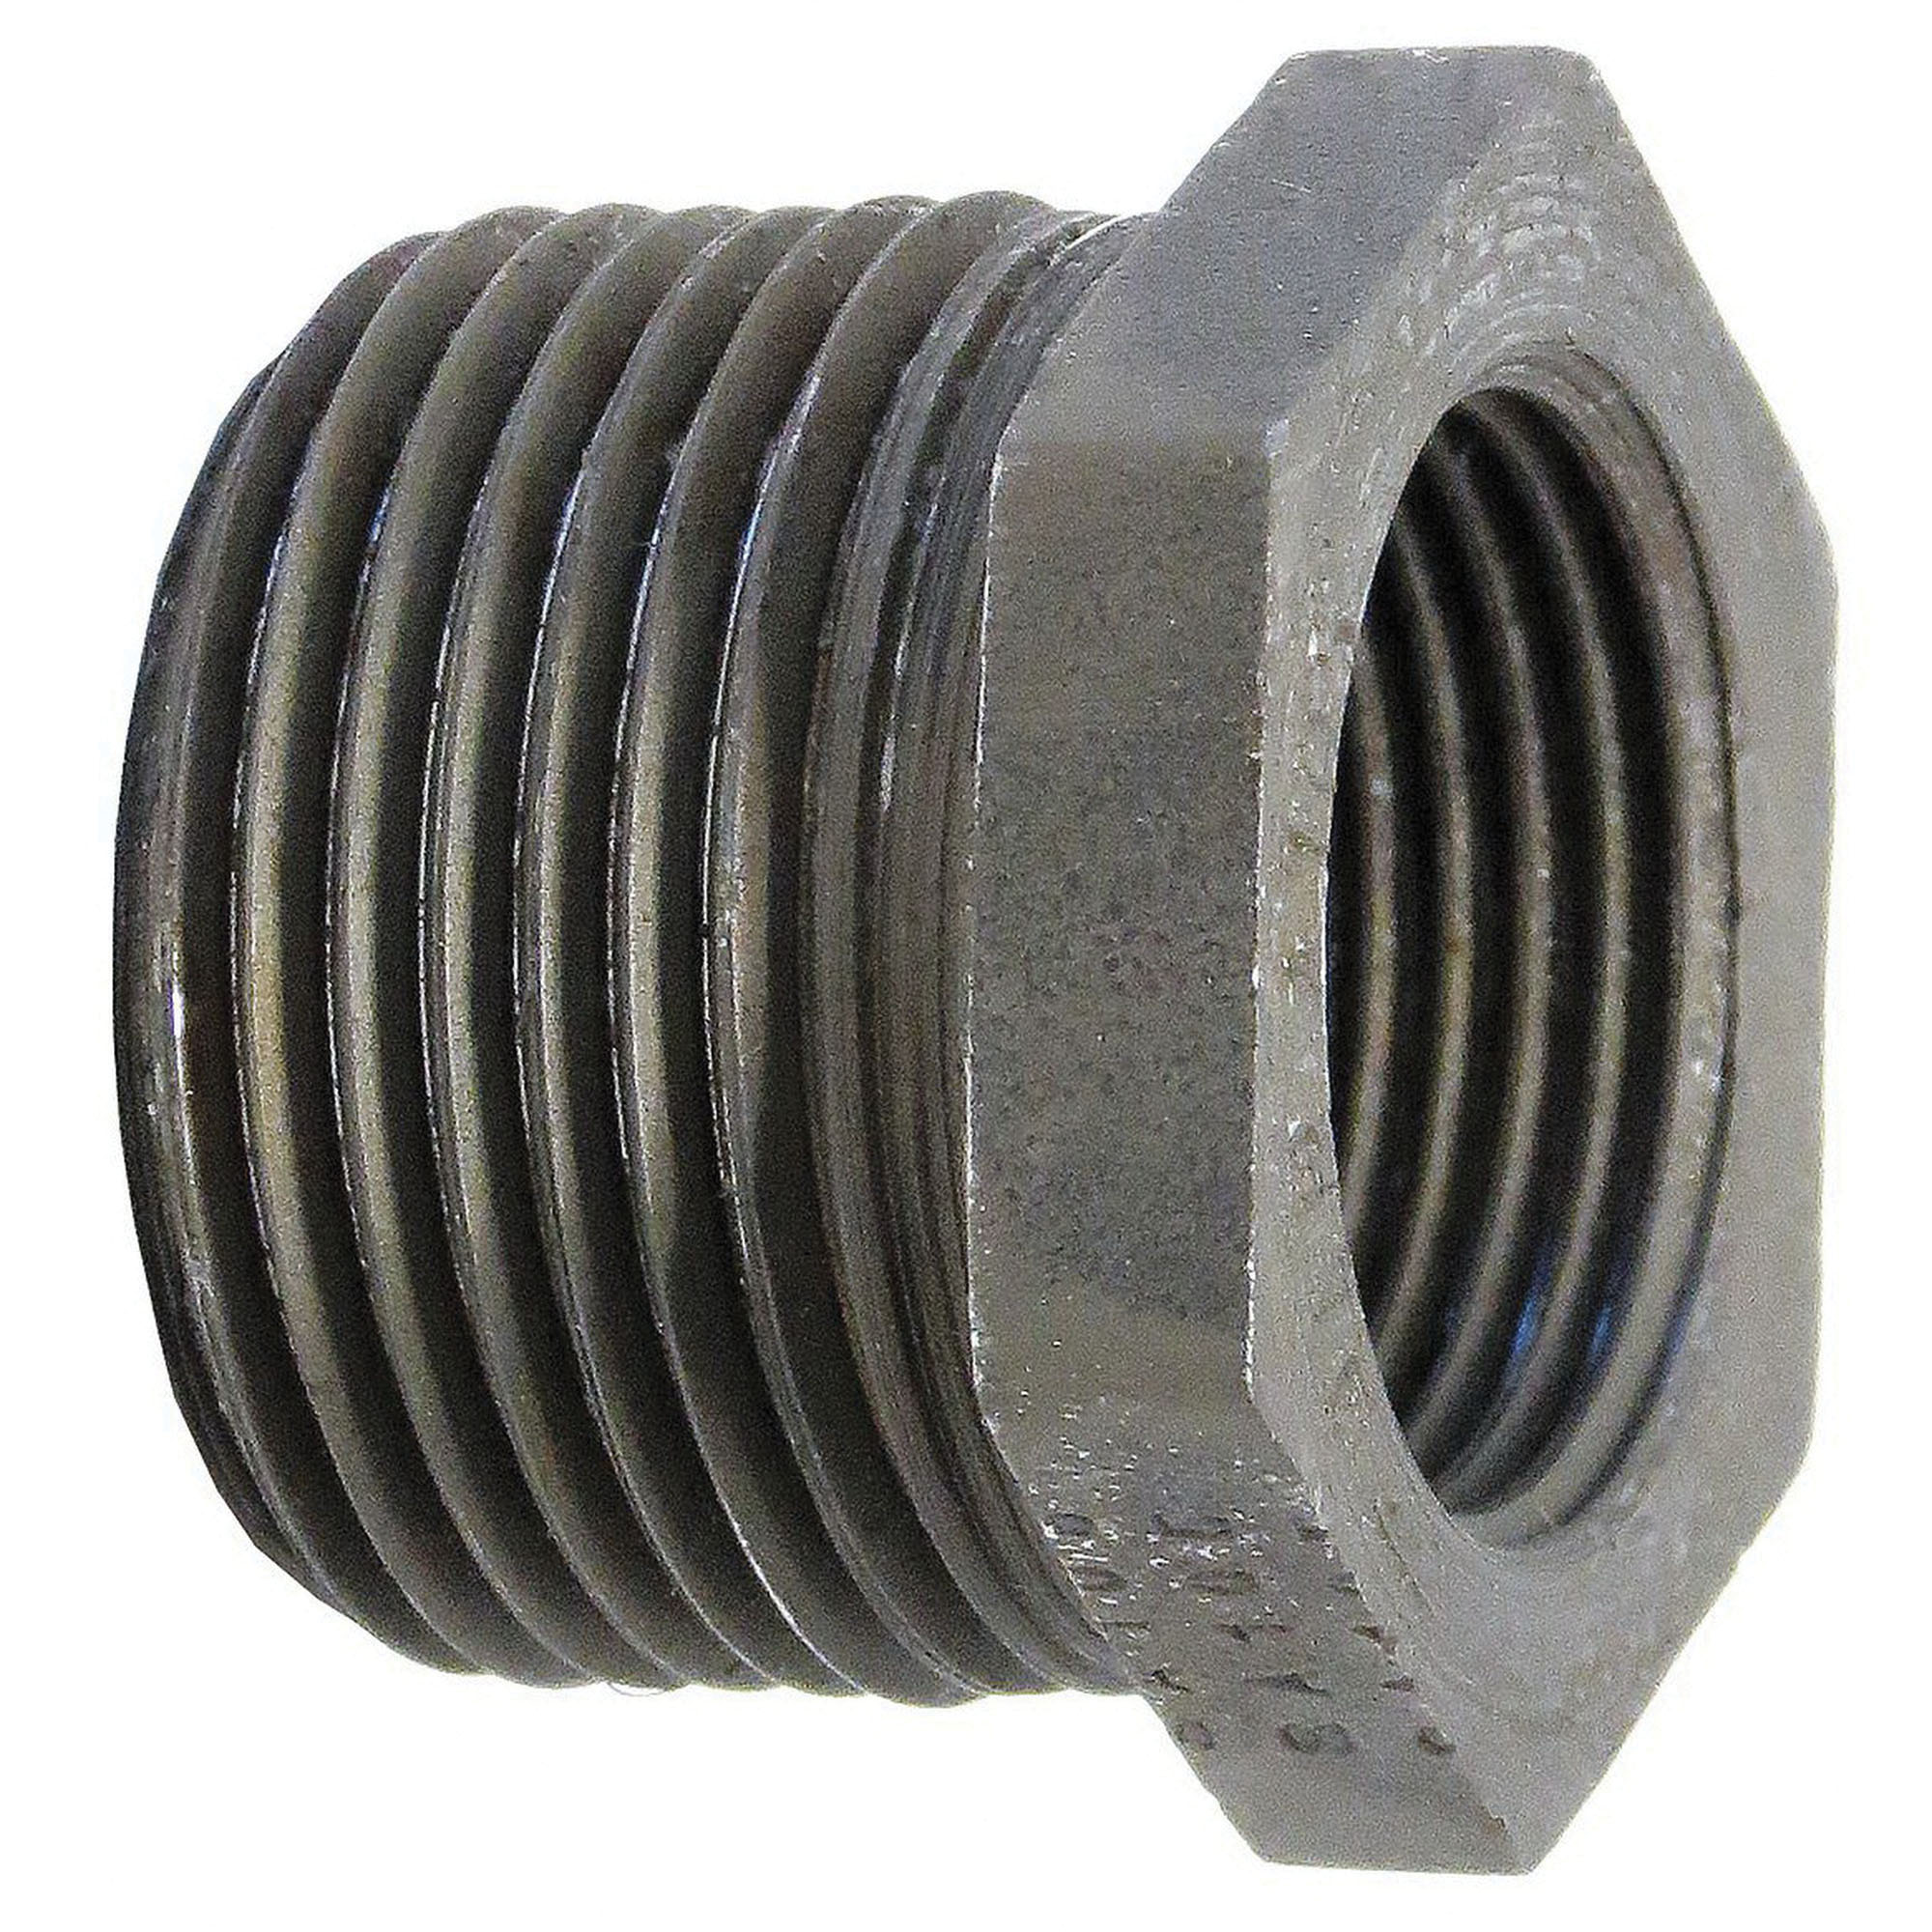 Steel Class 3000 Forged High Pressure Hex Bushing, 1 in x 1/4 in, MNPT x FNPT, Domestic, 50/CT